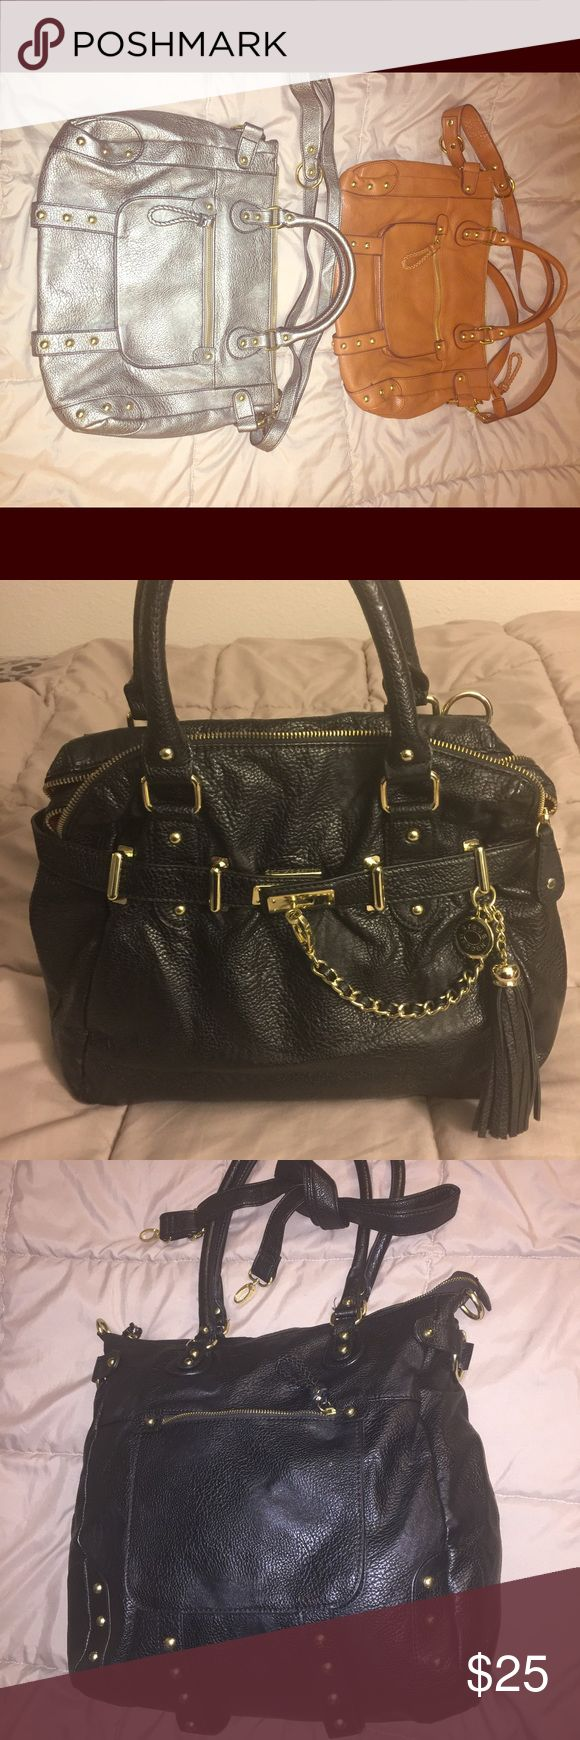 Steve Madden handbags $25 each Satchel style handbags w/cross body straps, excellent condition used once. Each bag asking $25 Steve Madden Bags Satchels